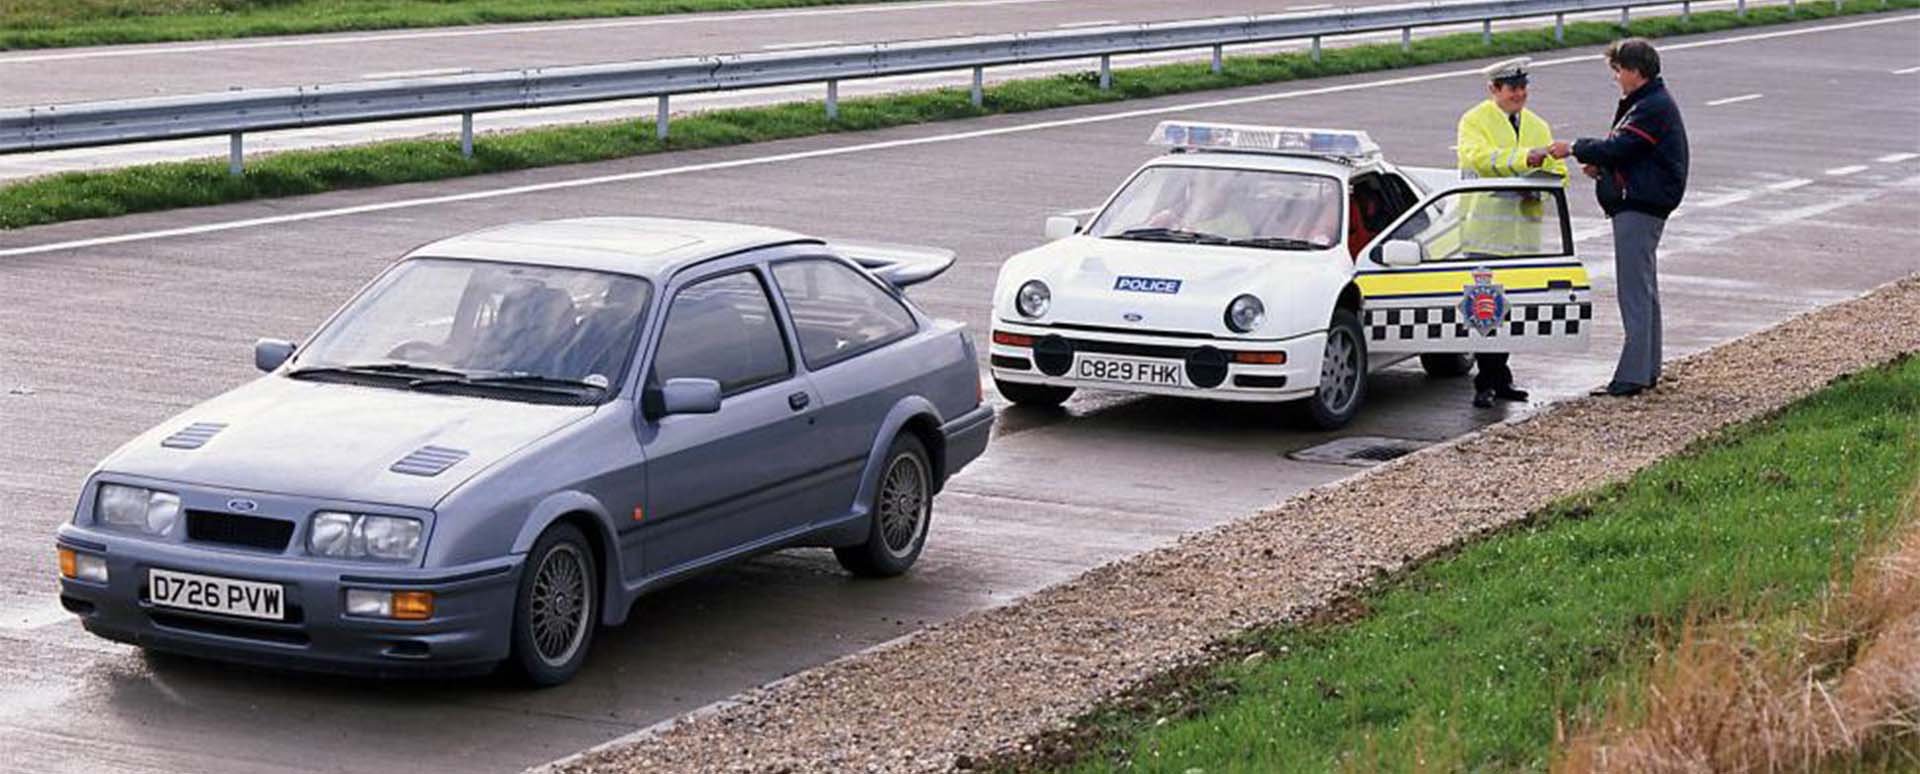 Ford RS200 police car pulling over Ford Sierra Cosworth